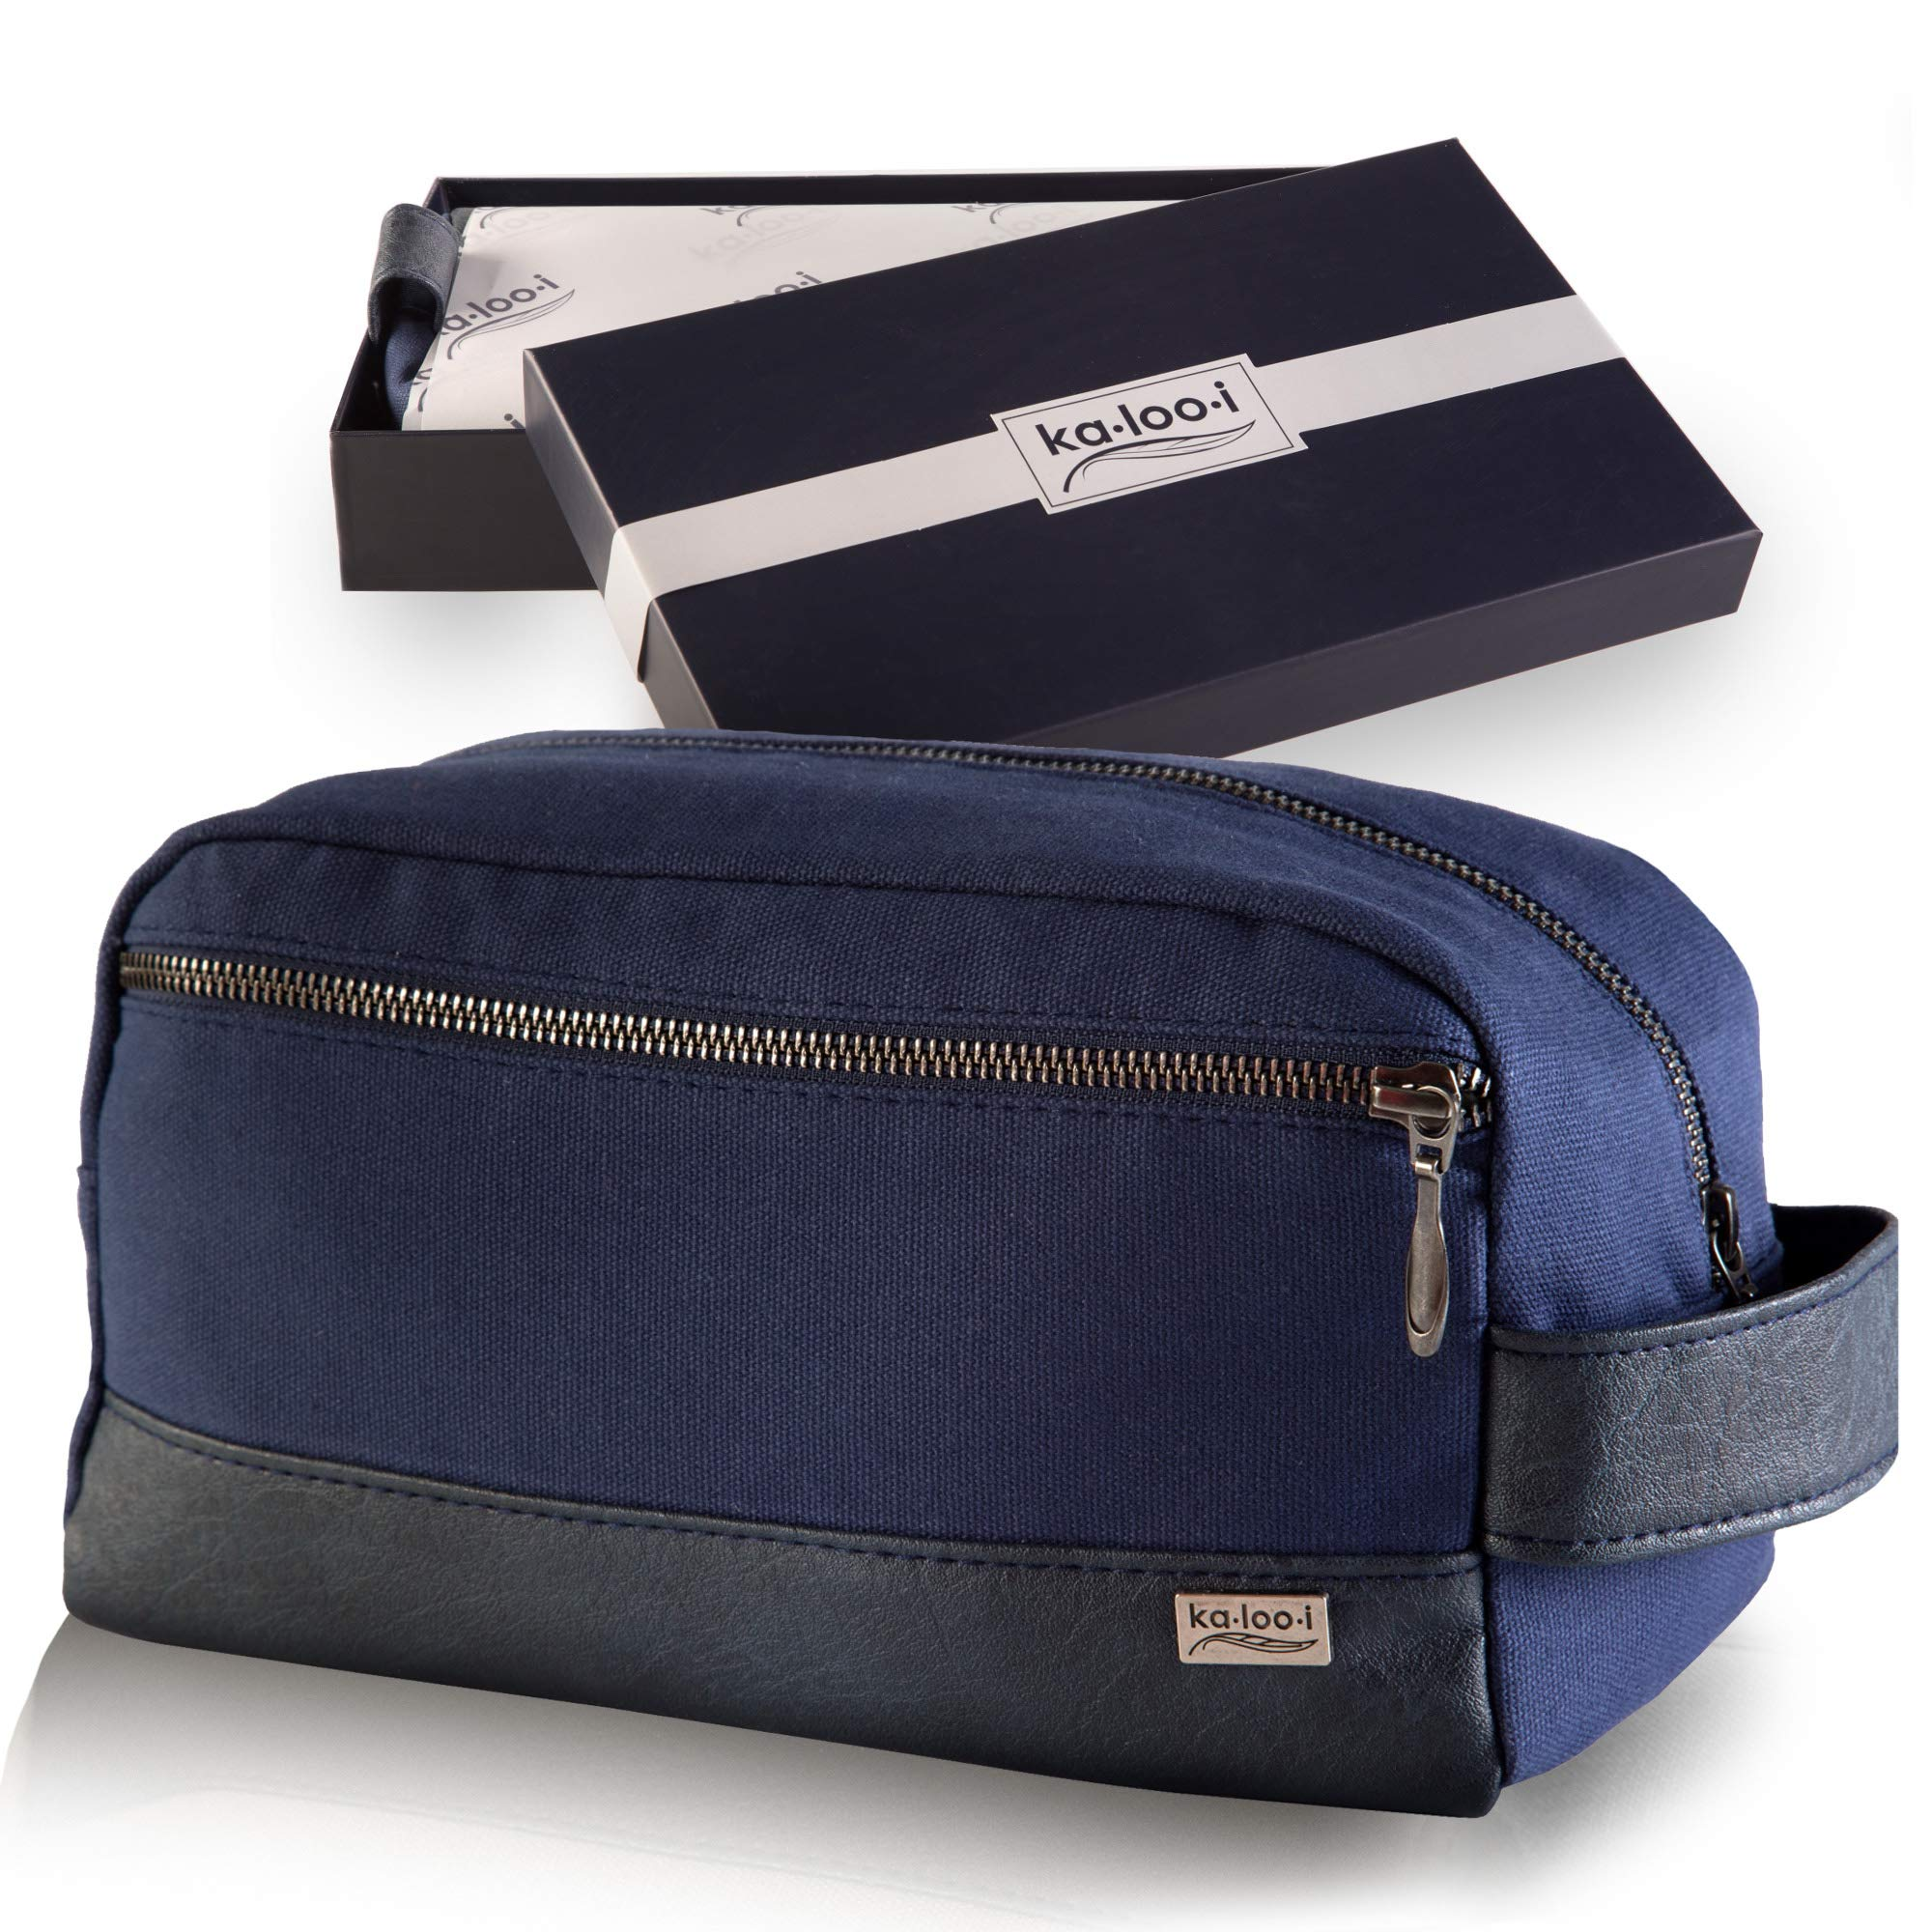 Other Health   Beauty - Toiletry Bag for Men - Canvas Dopp Kit for ... 85a0fe242b213